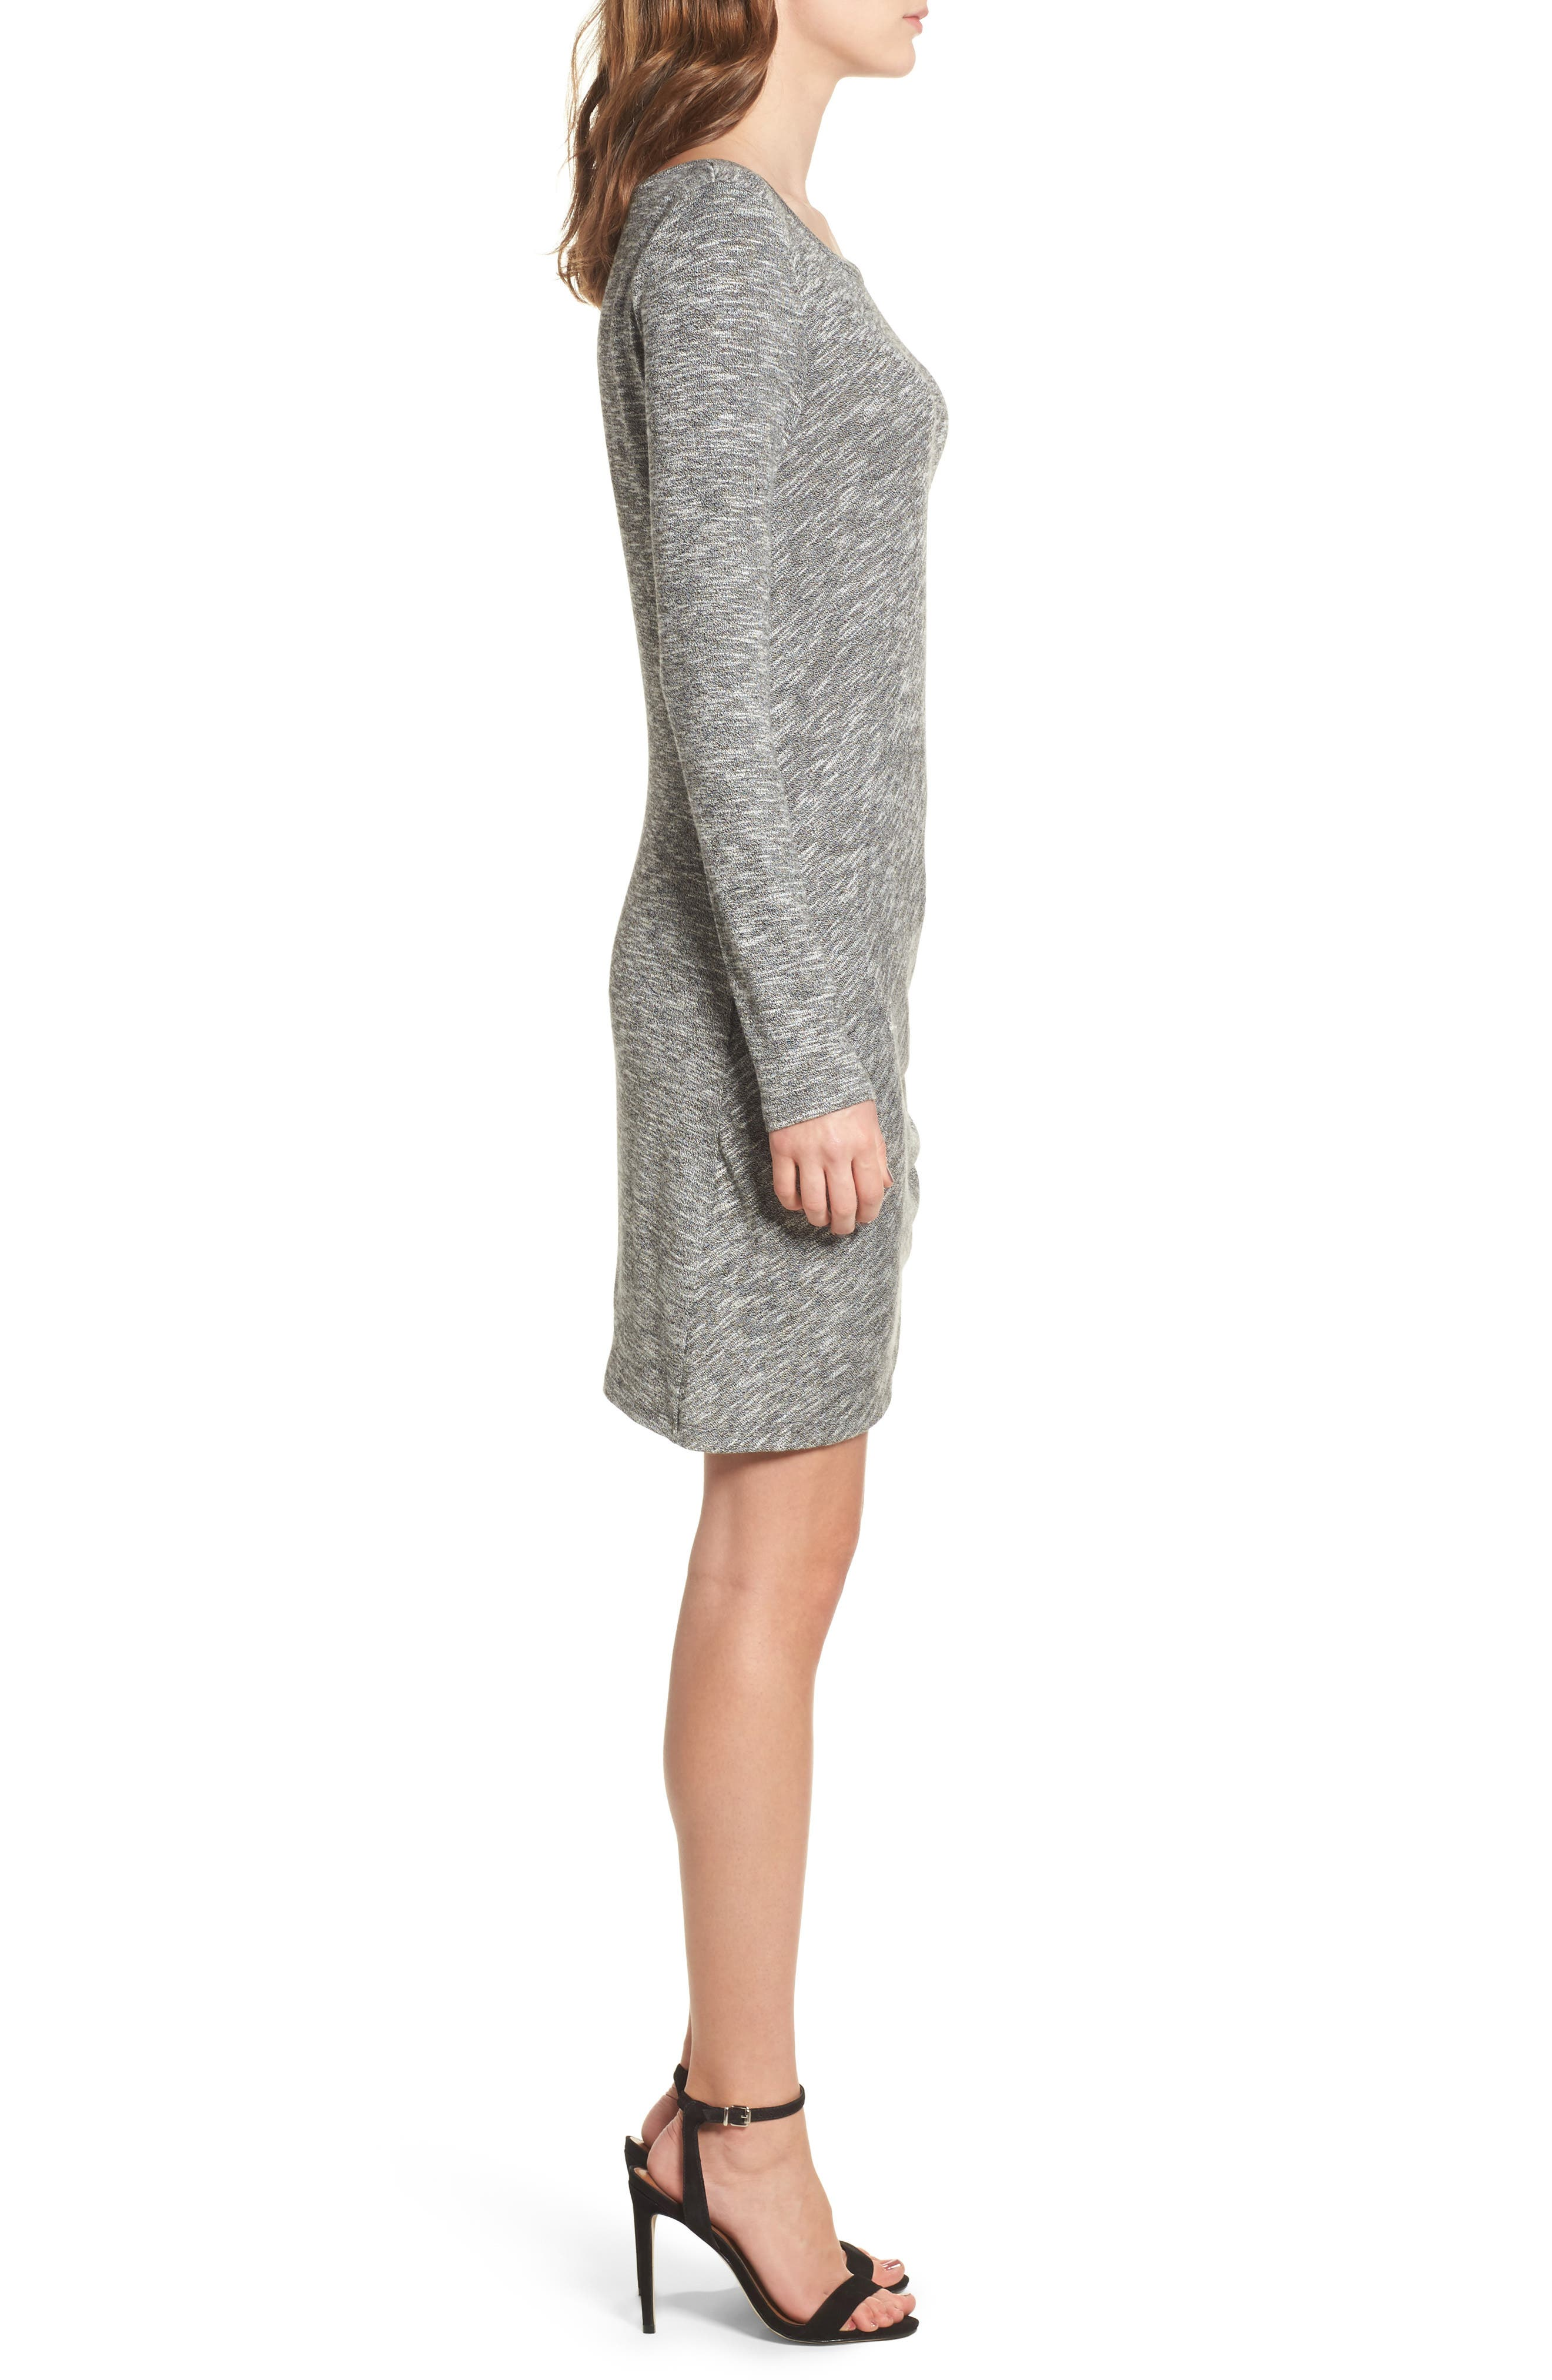 Ruched Knit Dress,                             Alternate thumbnail 3, color,                             020